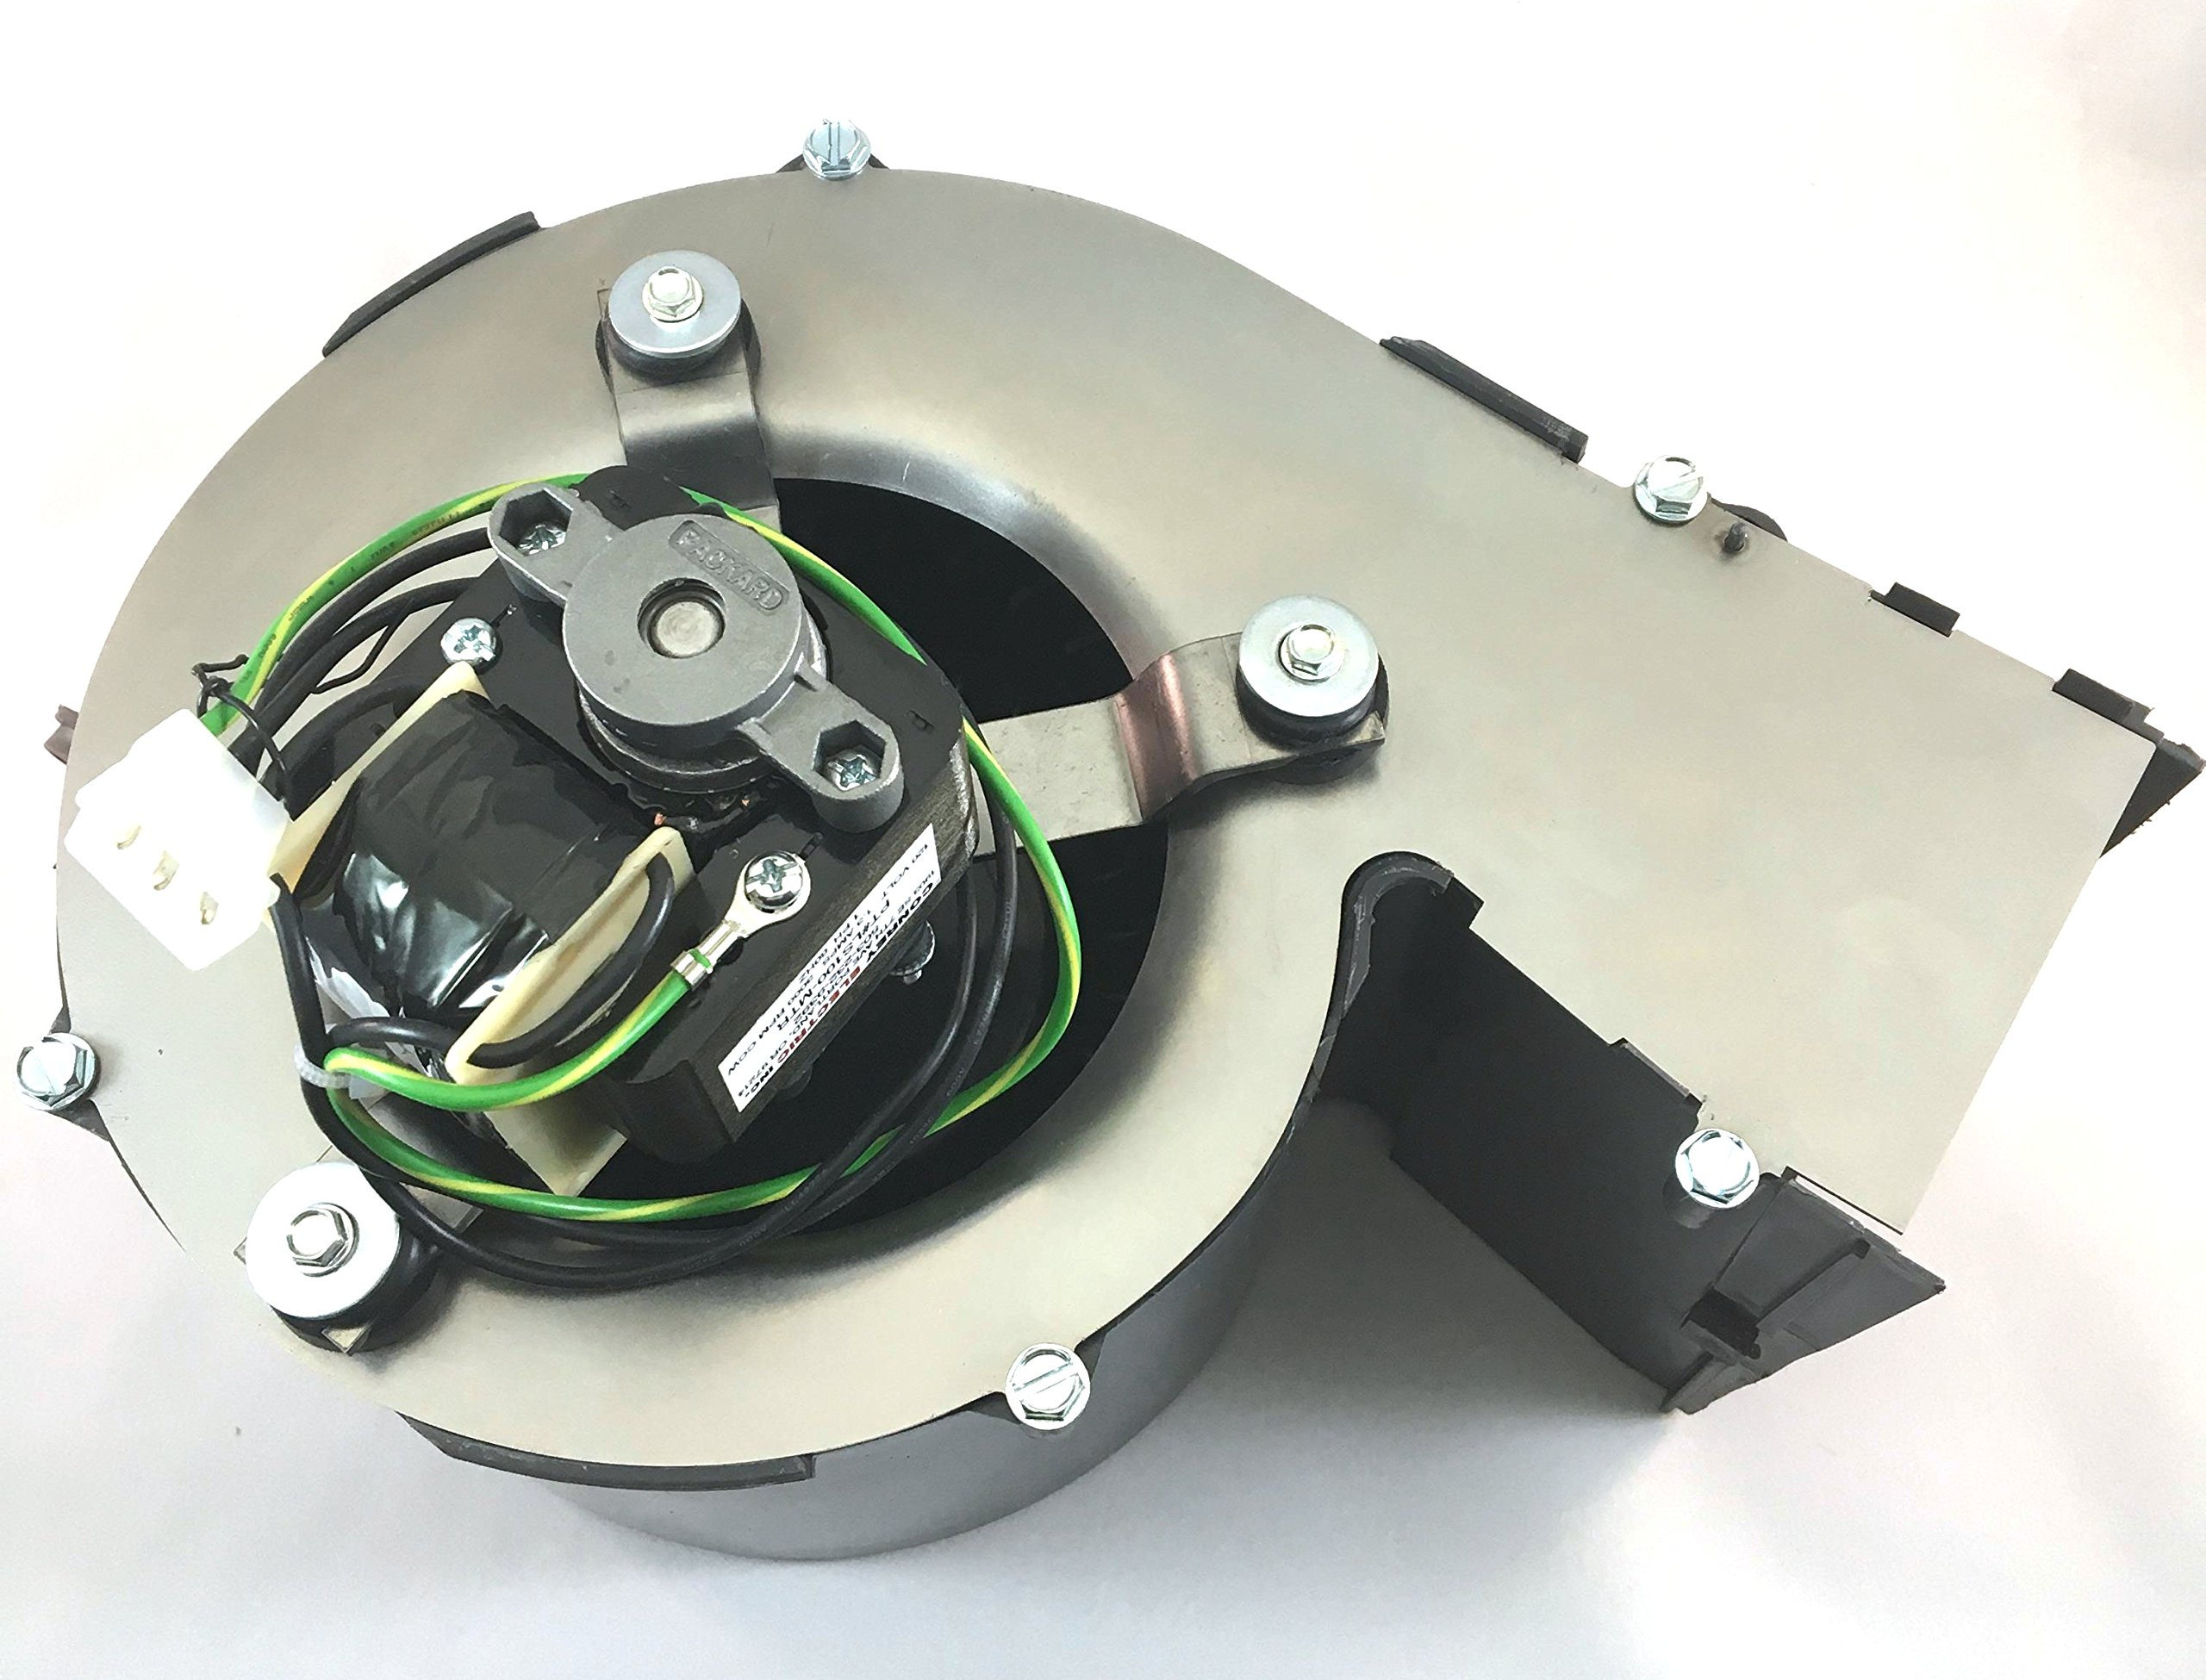 Nutone Blower to replace LS100, LS80, LS50, LS100SE, LS80SE and LS50SE with 3 prong plug